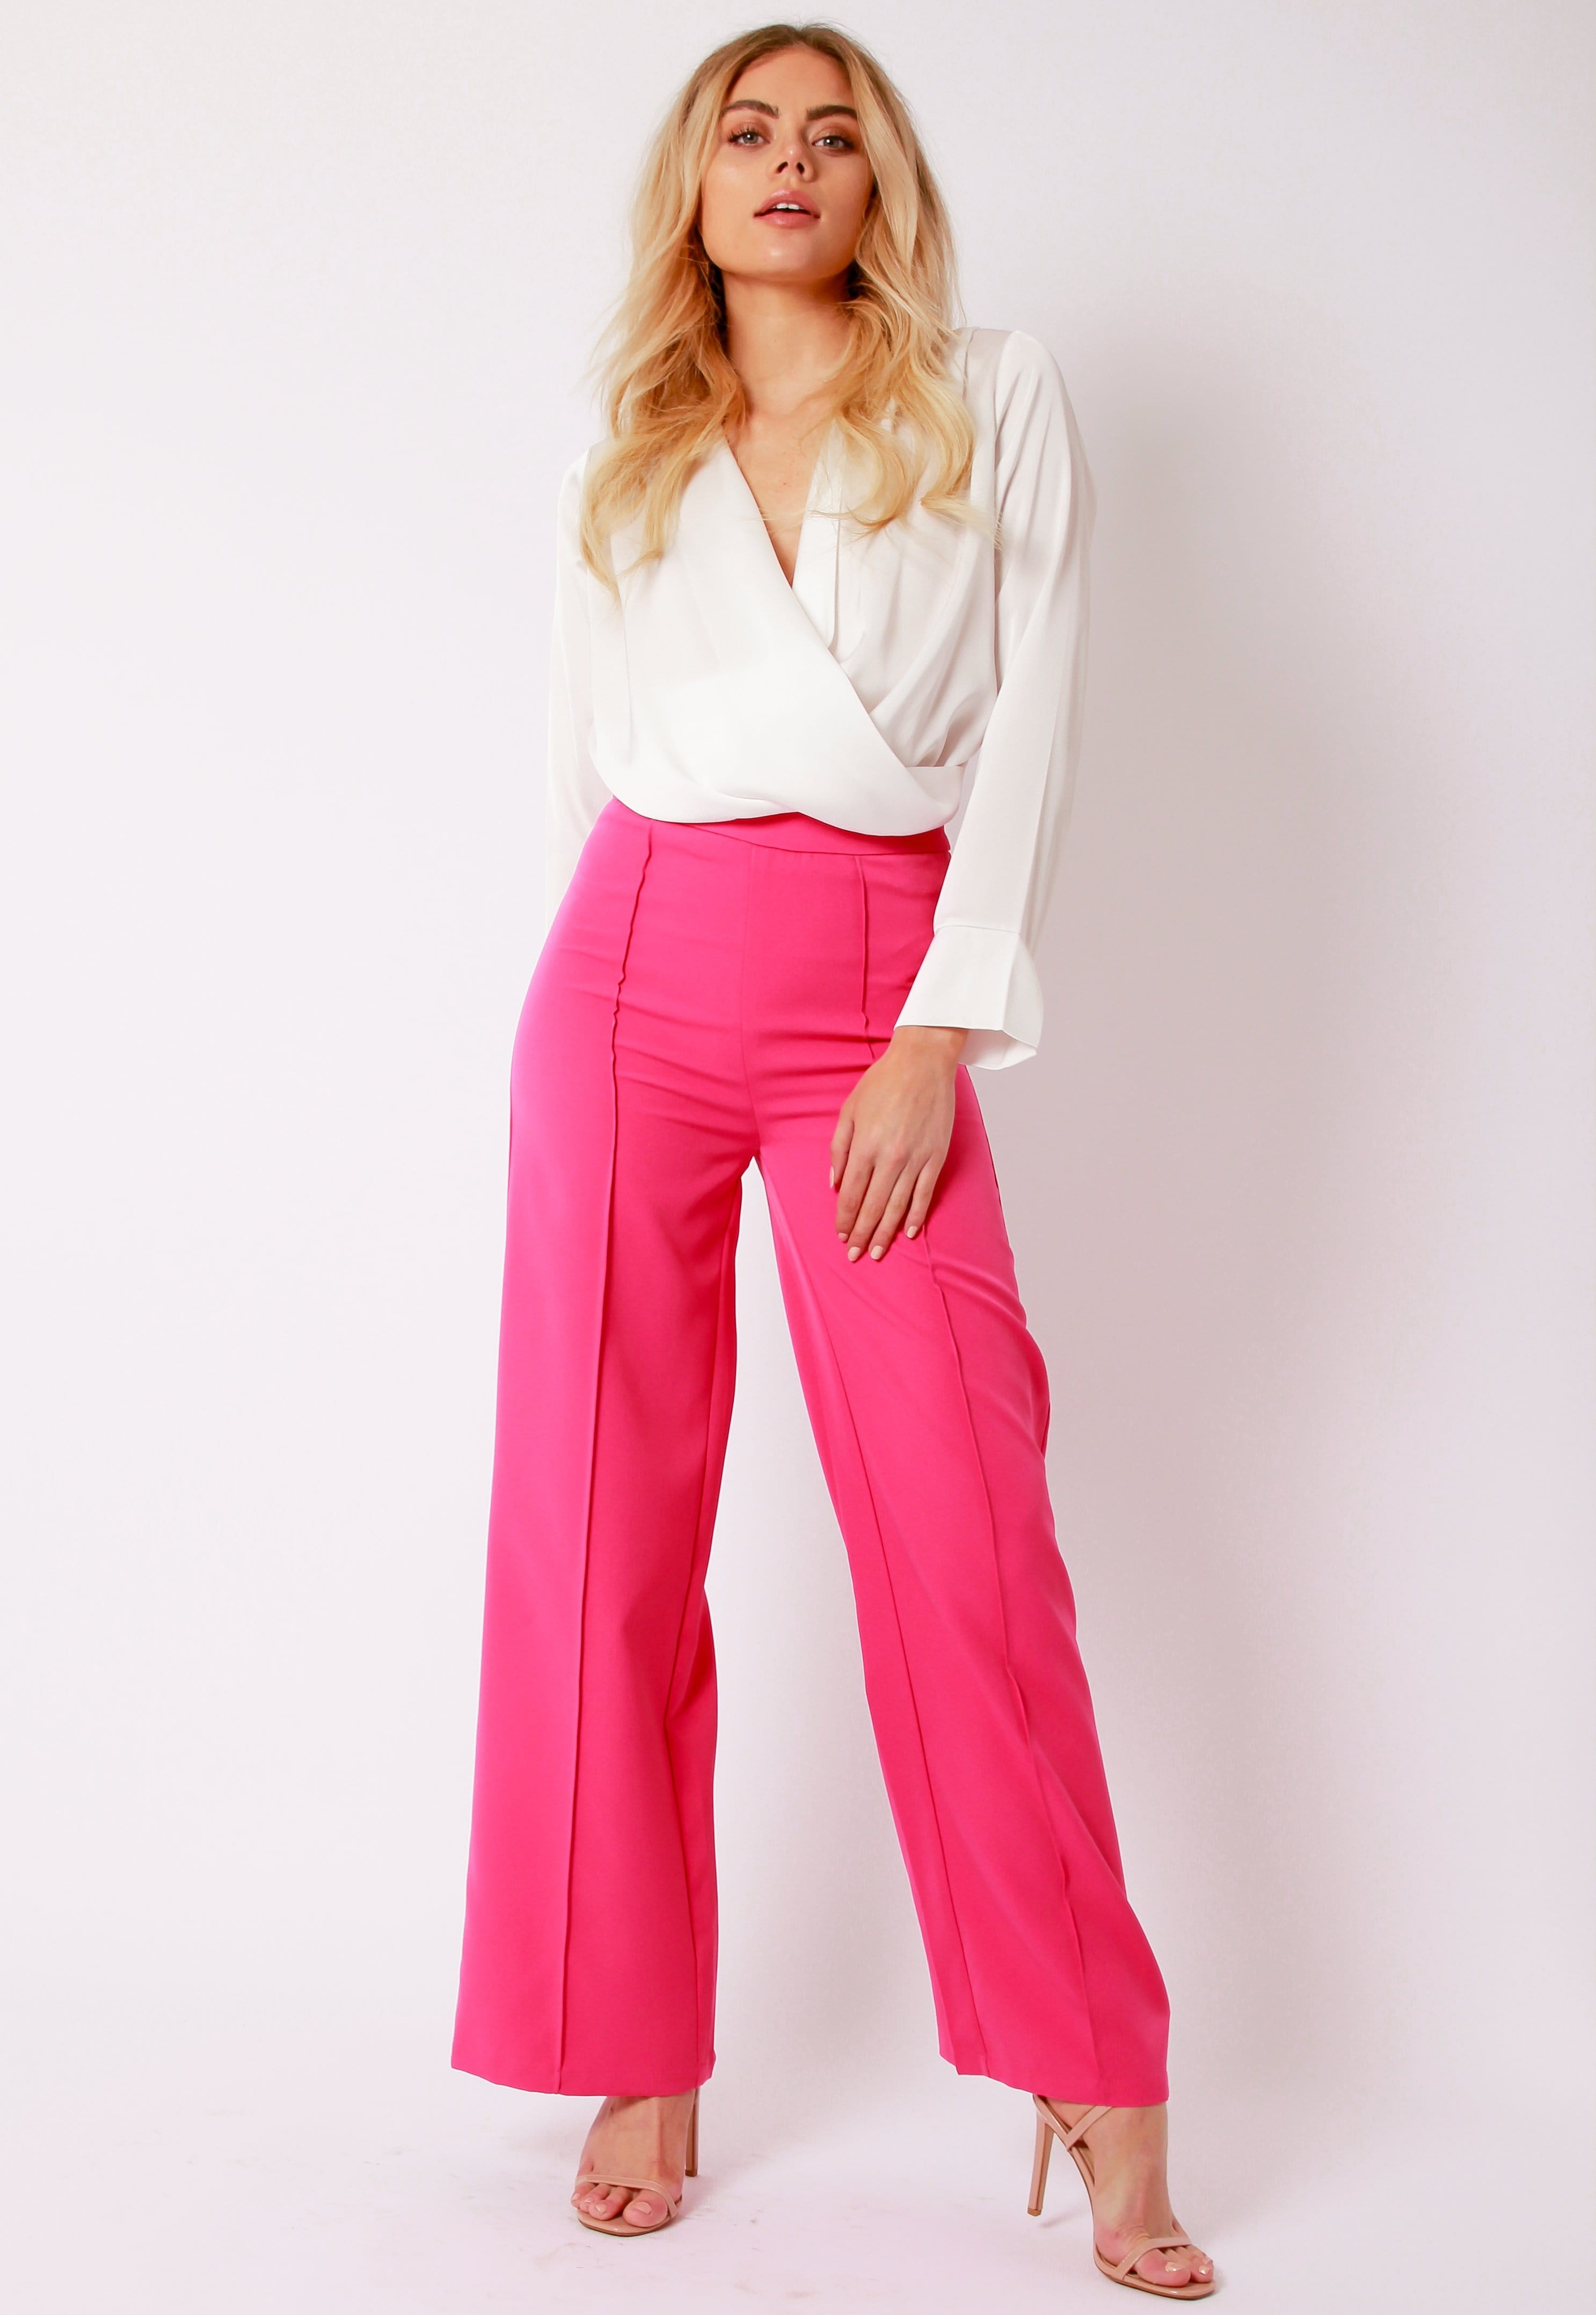 Outet Kingsley Tailored Trousers - Fuchsia, Bottoms - Pretty Lavish